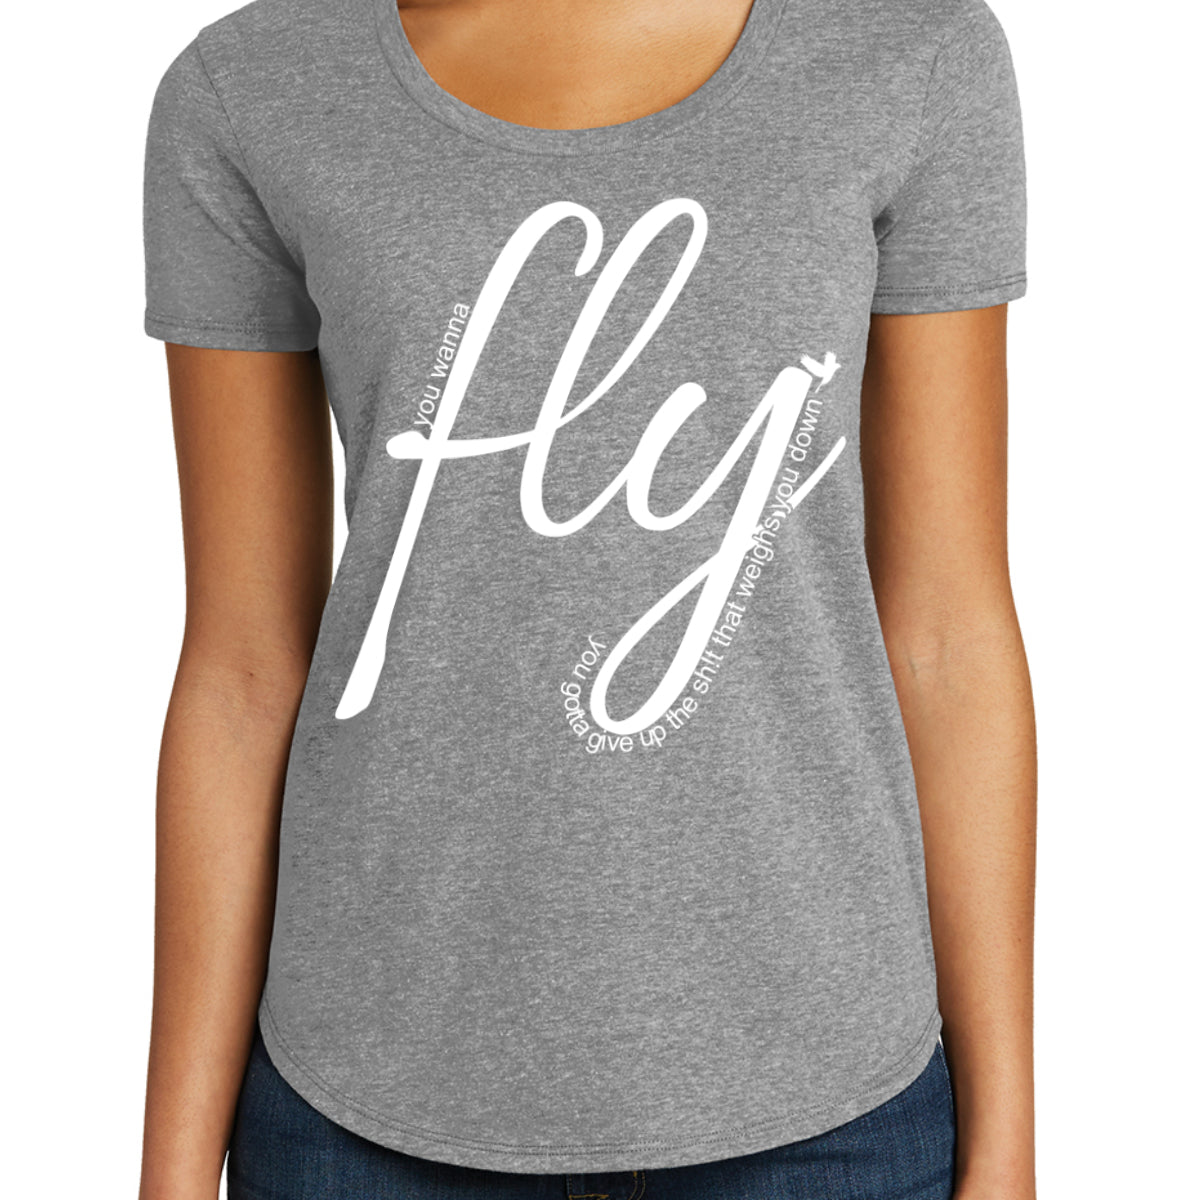 Fly - Women's Scoop Neck Fitted T-shirts